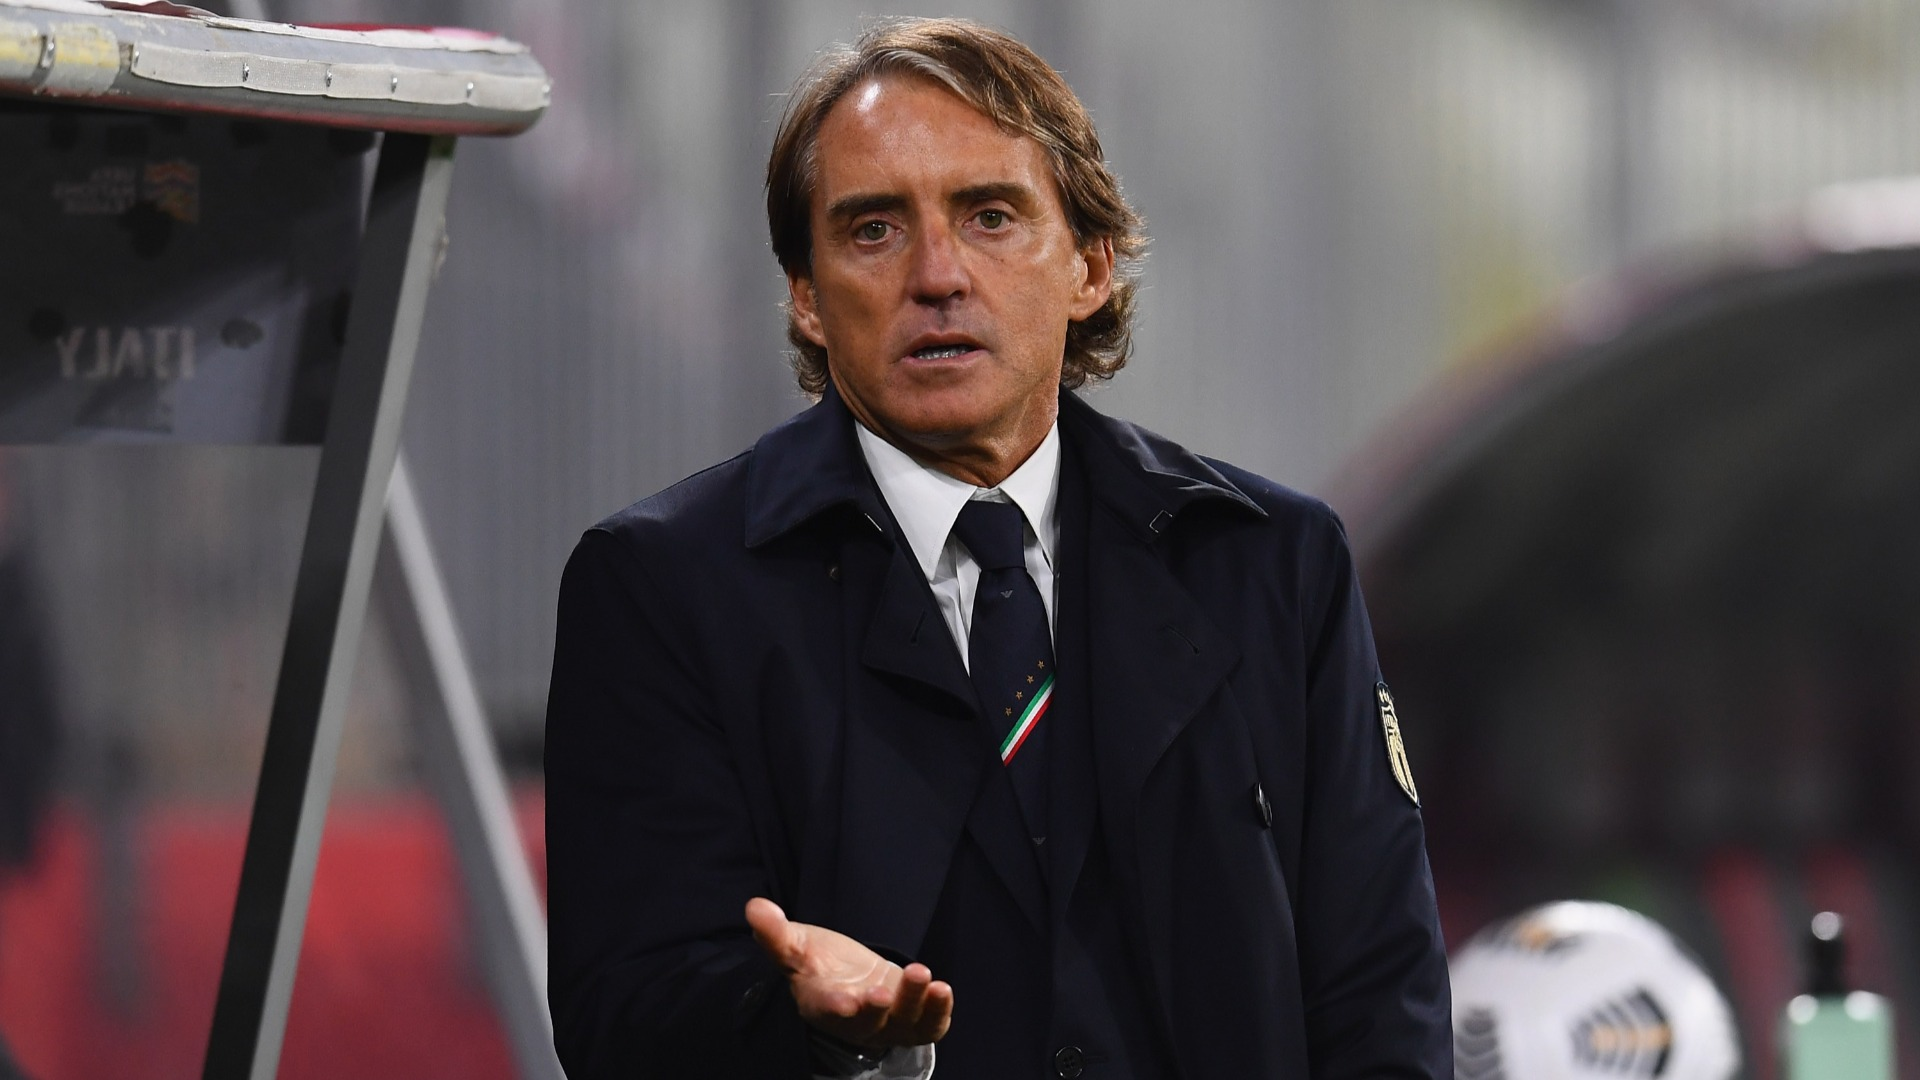 Mancini and Verratti rue 'missed opportunity' for wasteful Italy